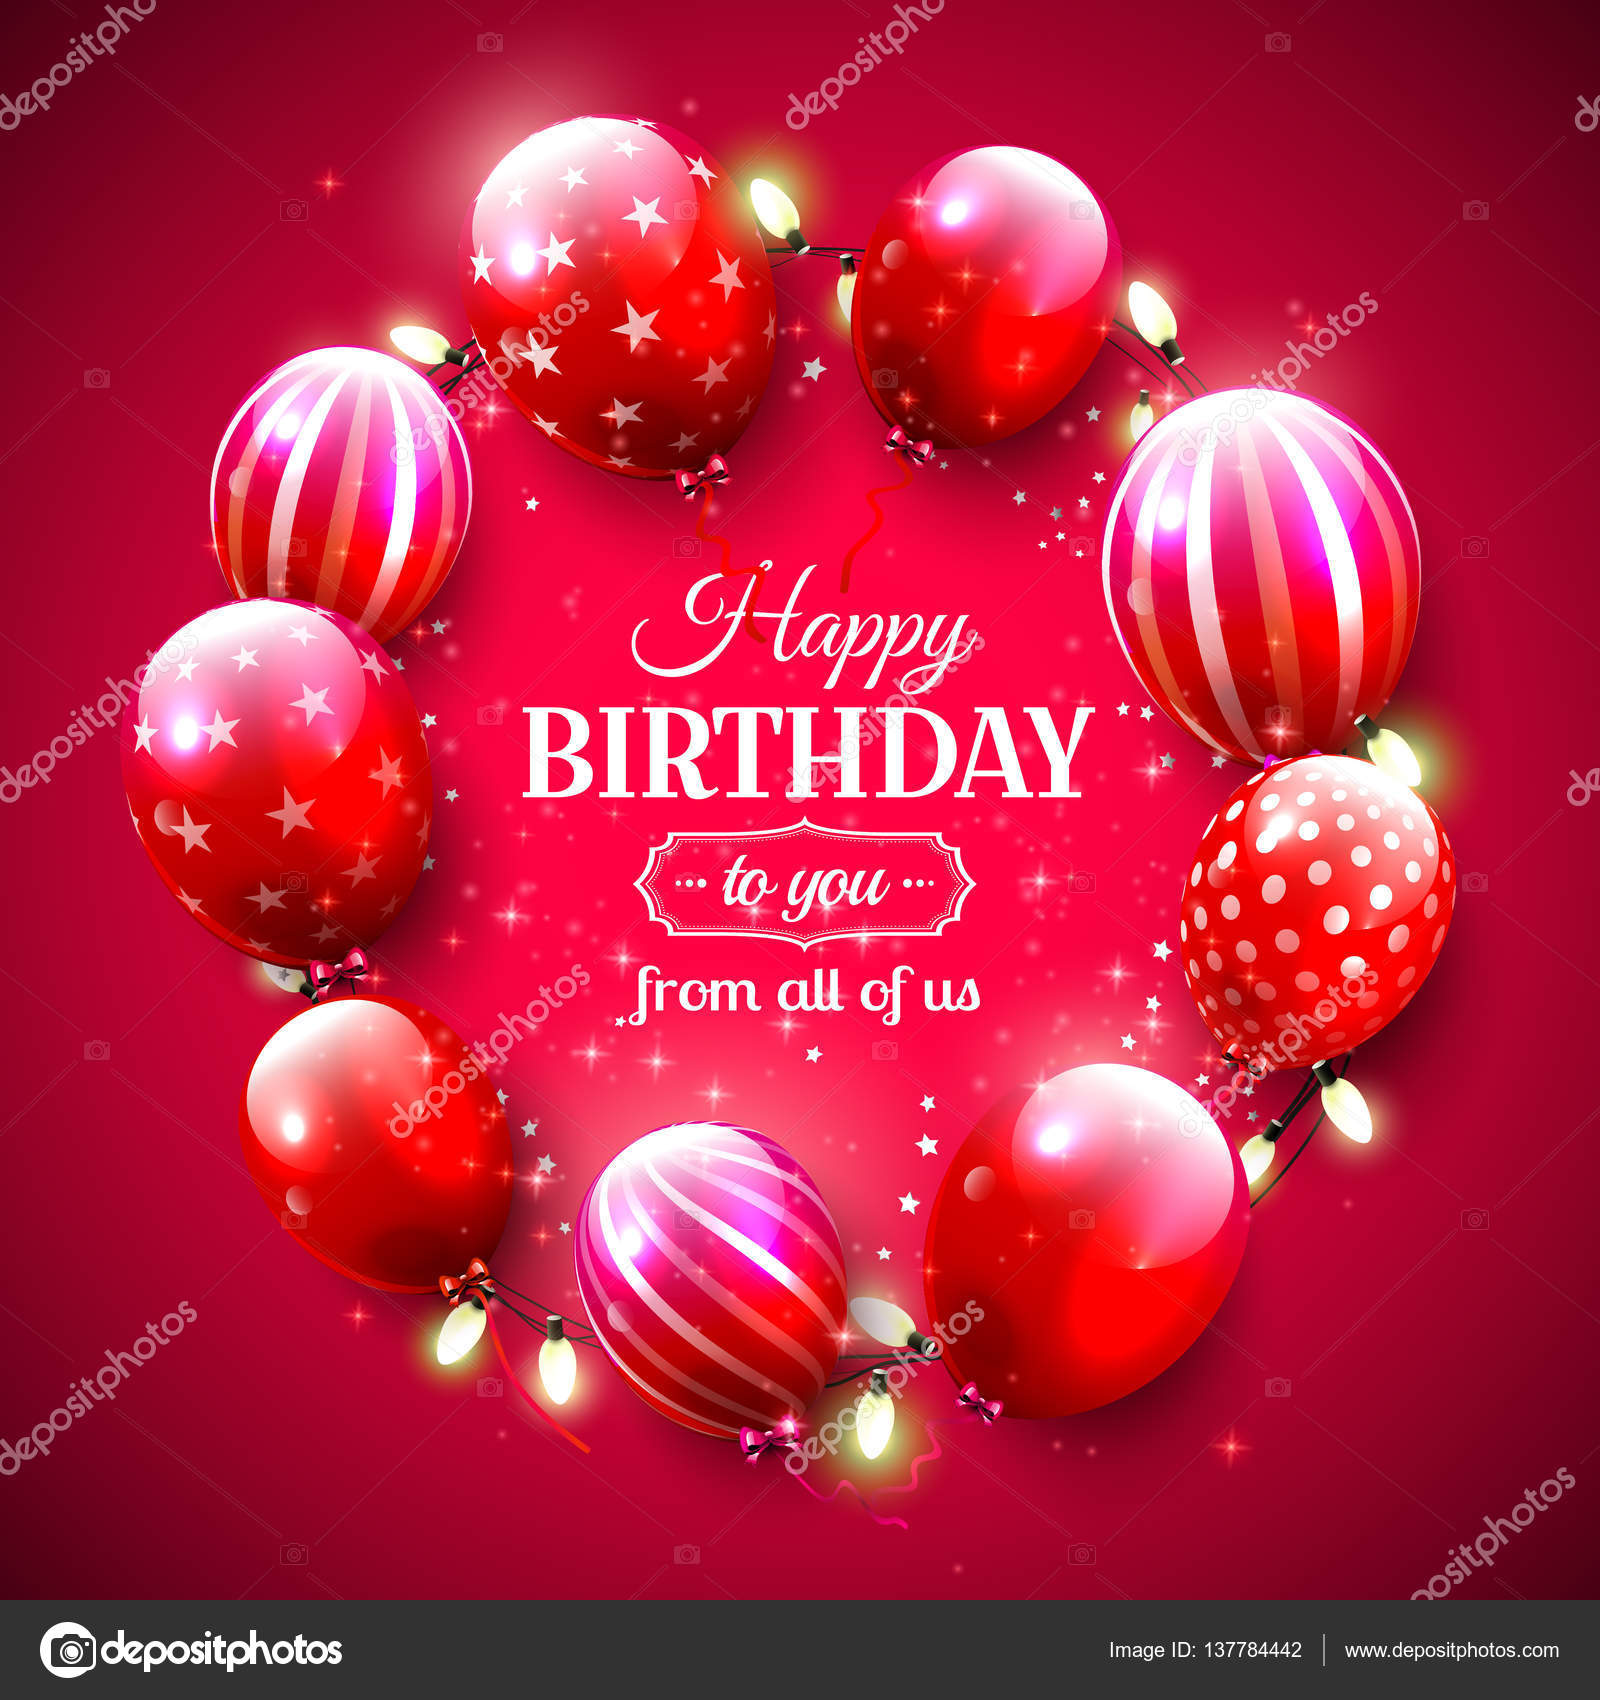 Luxury birthday greeting card stock vector kaktus2536 137784442 luxury birthday greeting card stock vector kristyandbryce Image collections